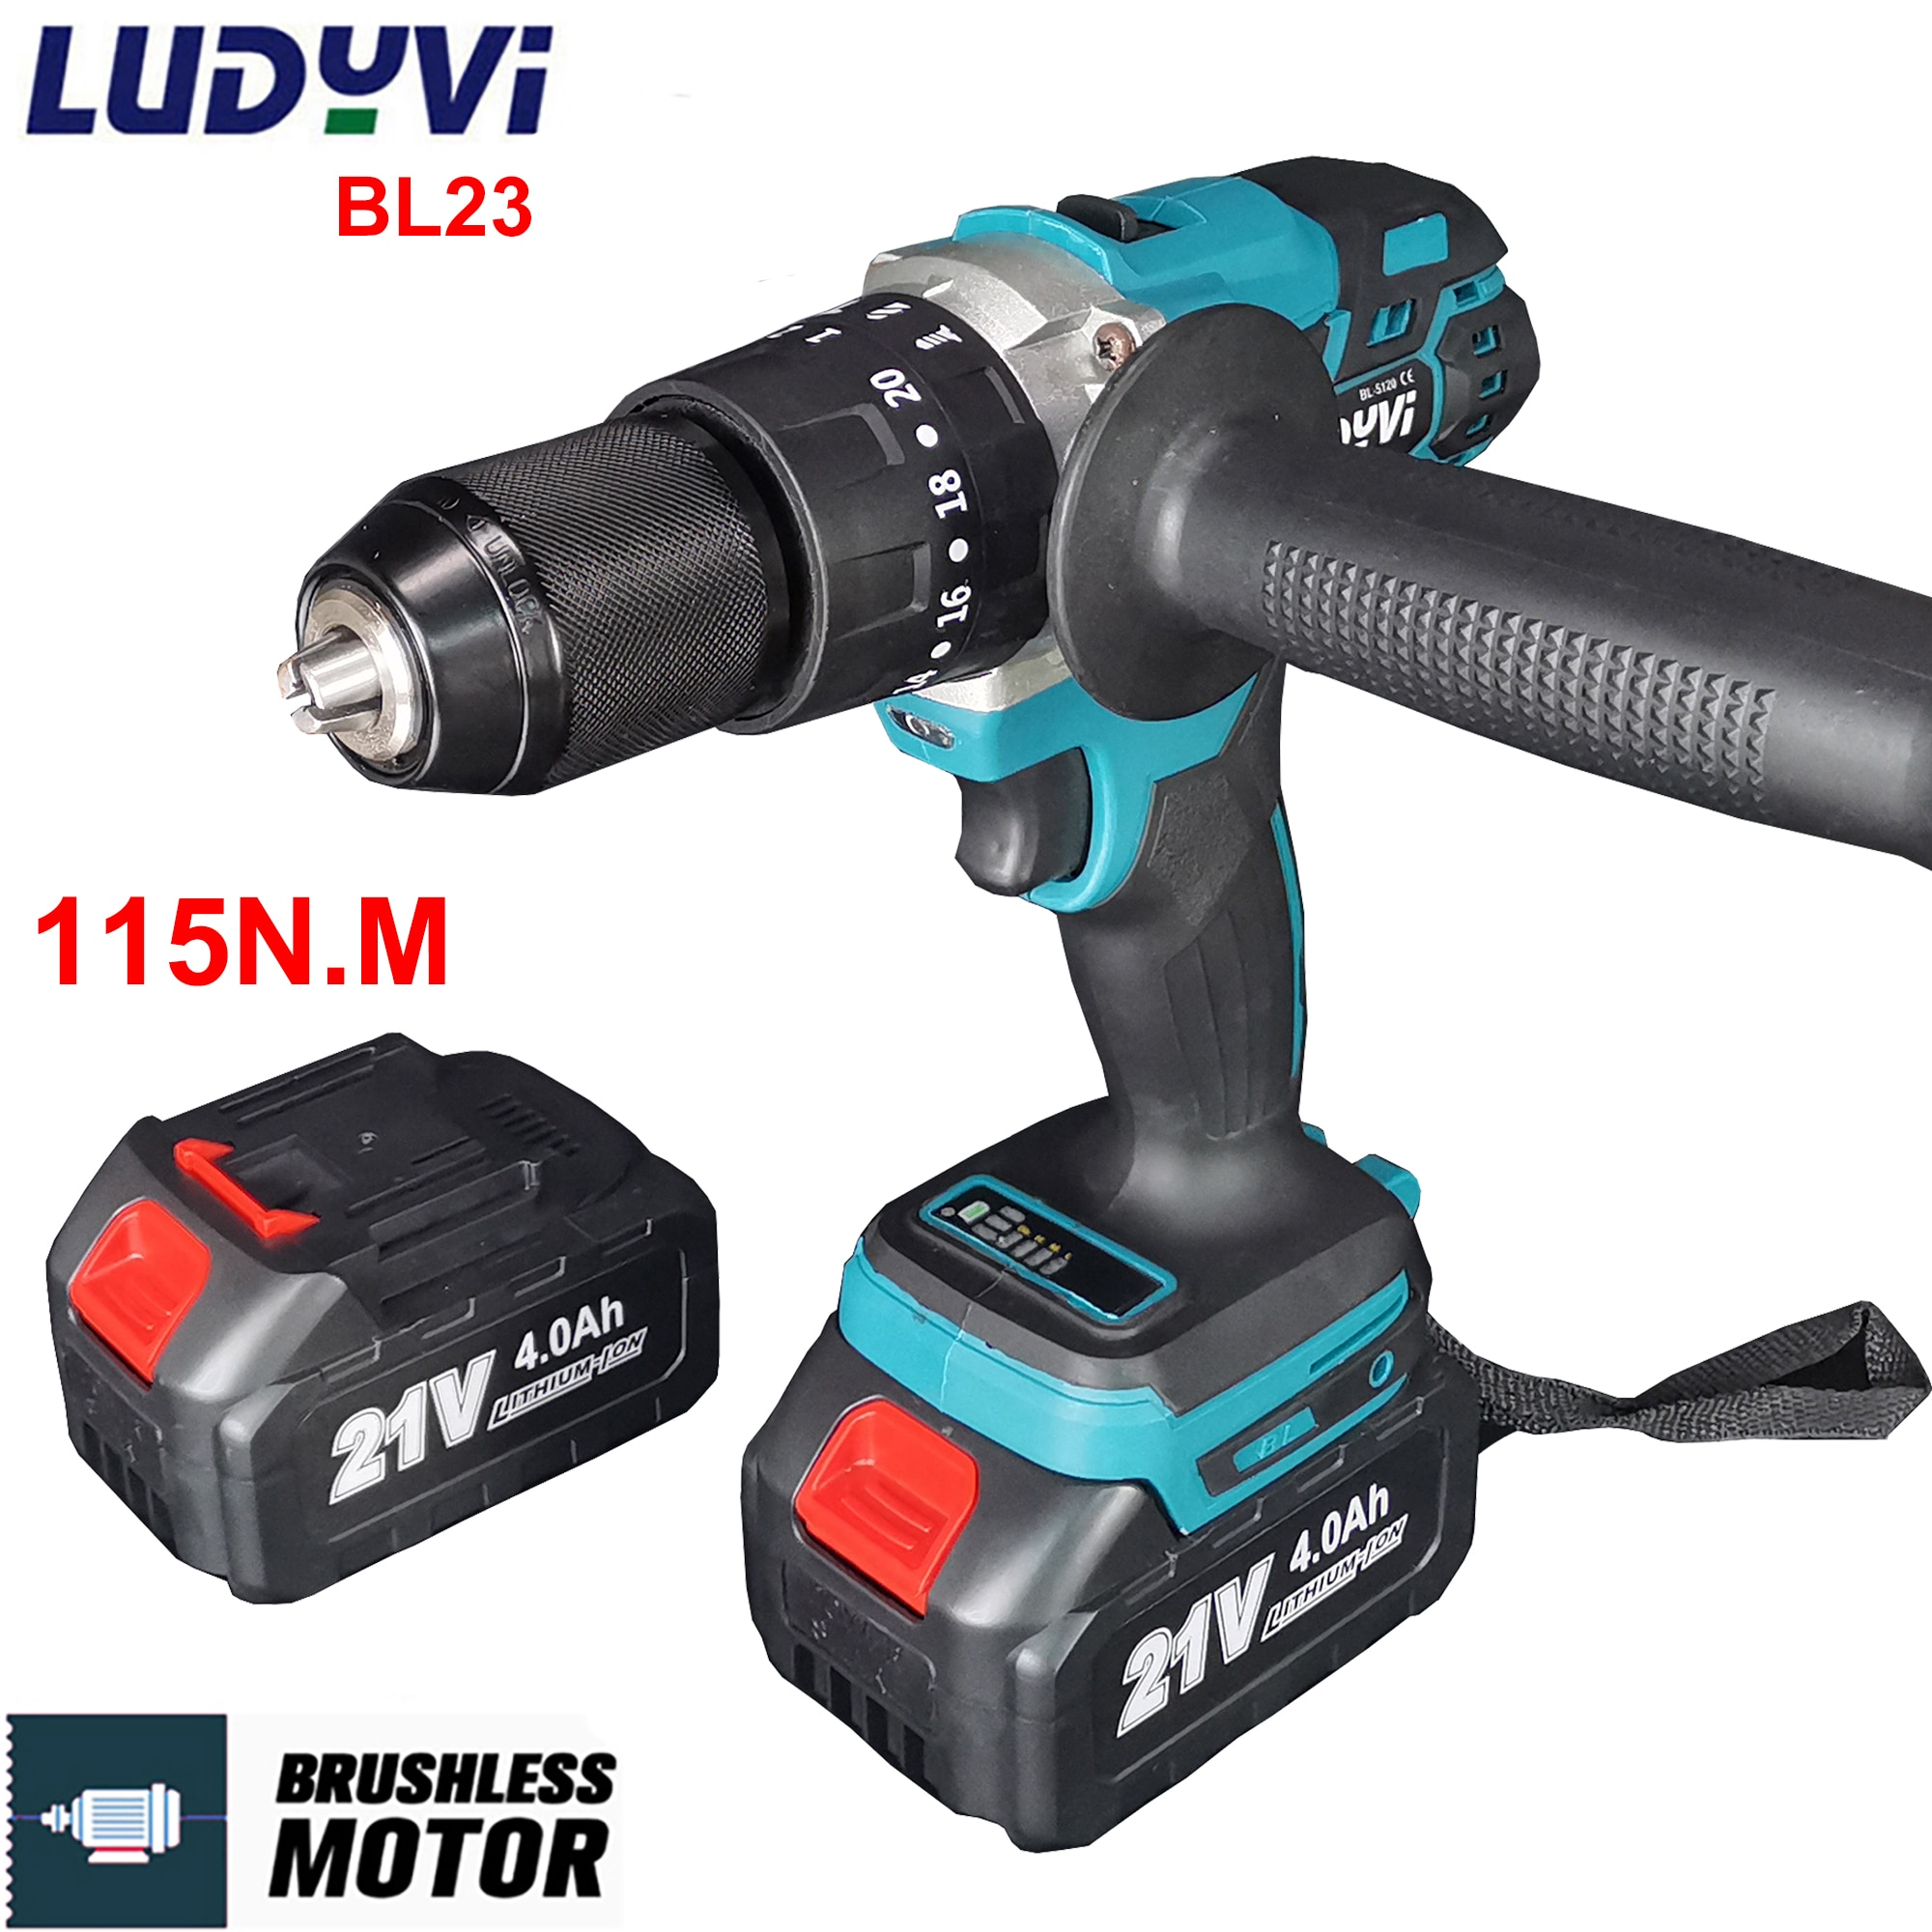 cordless drill 21v power tools 3 in 1 with impact function rotary tool electric screwdriver 21V 13MM Brushless Electric Drill 115N/M 4000mah Battery Cordless Screwdriver With Impact Function Can Ice Fishing Power Tools